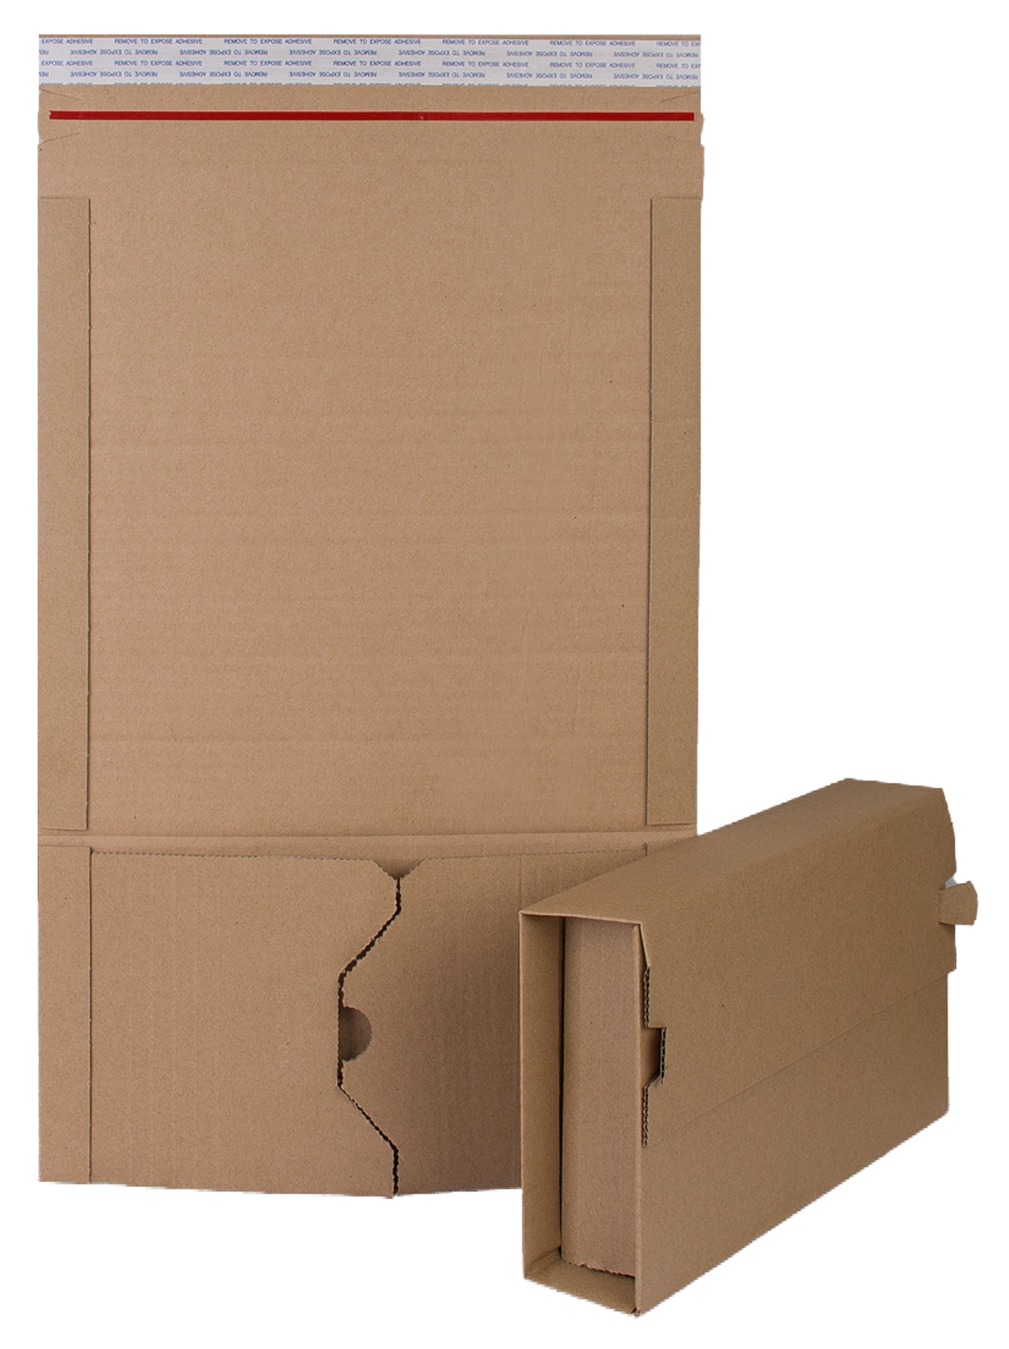 C4 Book Wrap Mailer Box 326x280x70mm